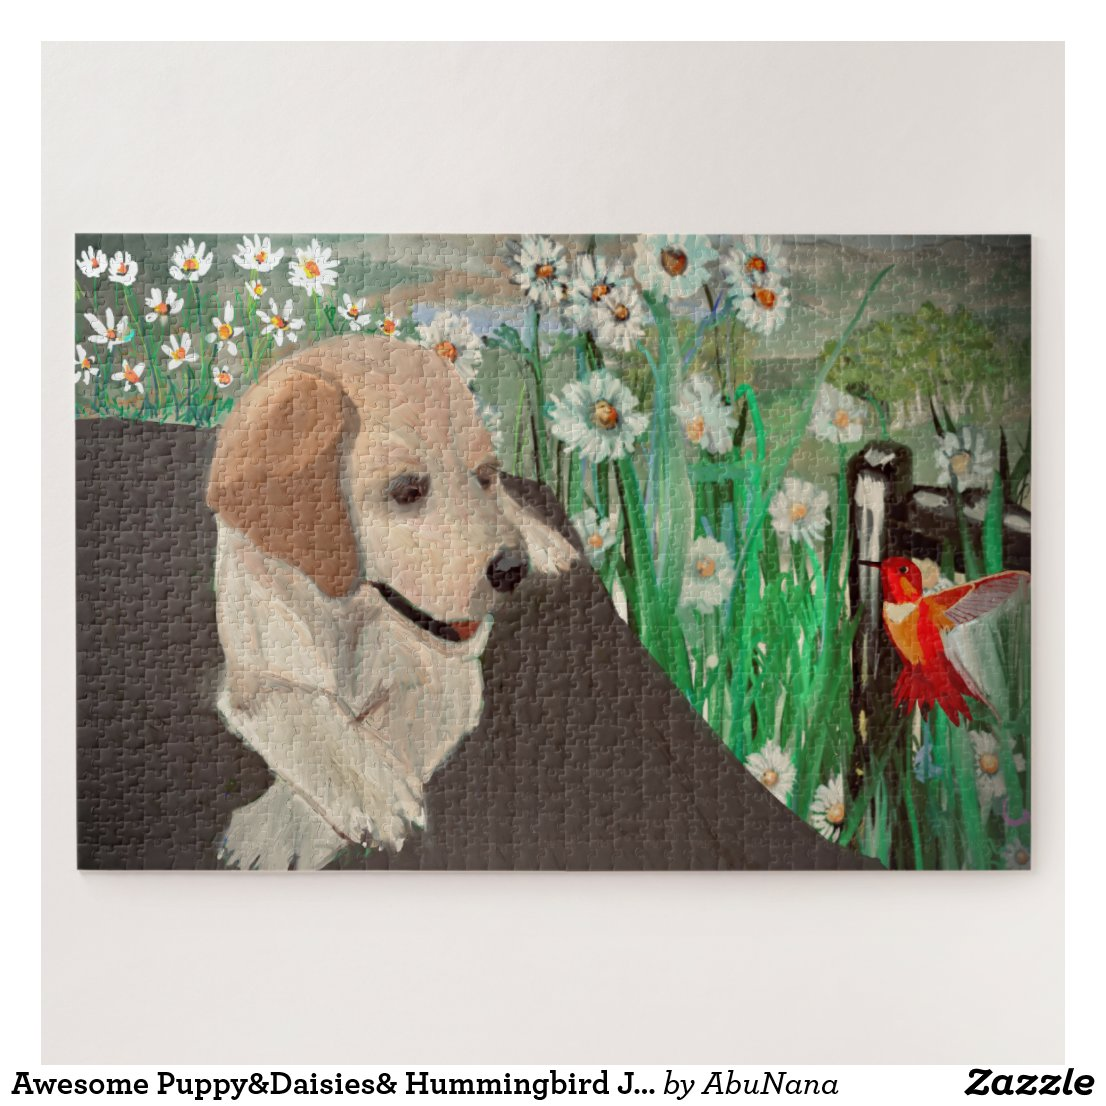 Awesome Puppy&Daisies& Hummingbird Jigsaw Puzzle